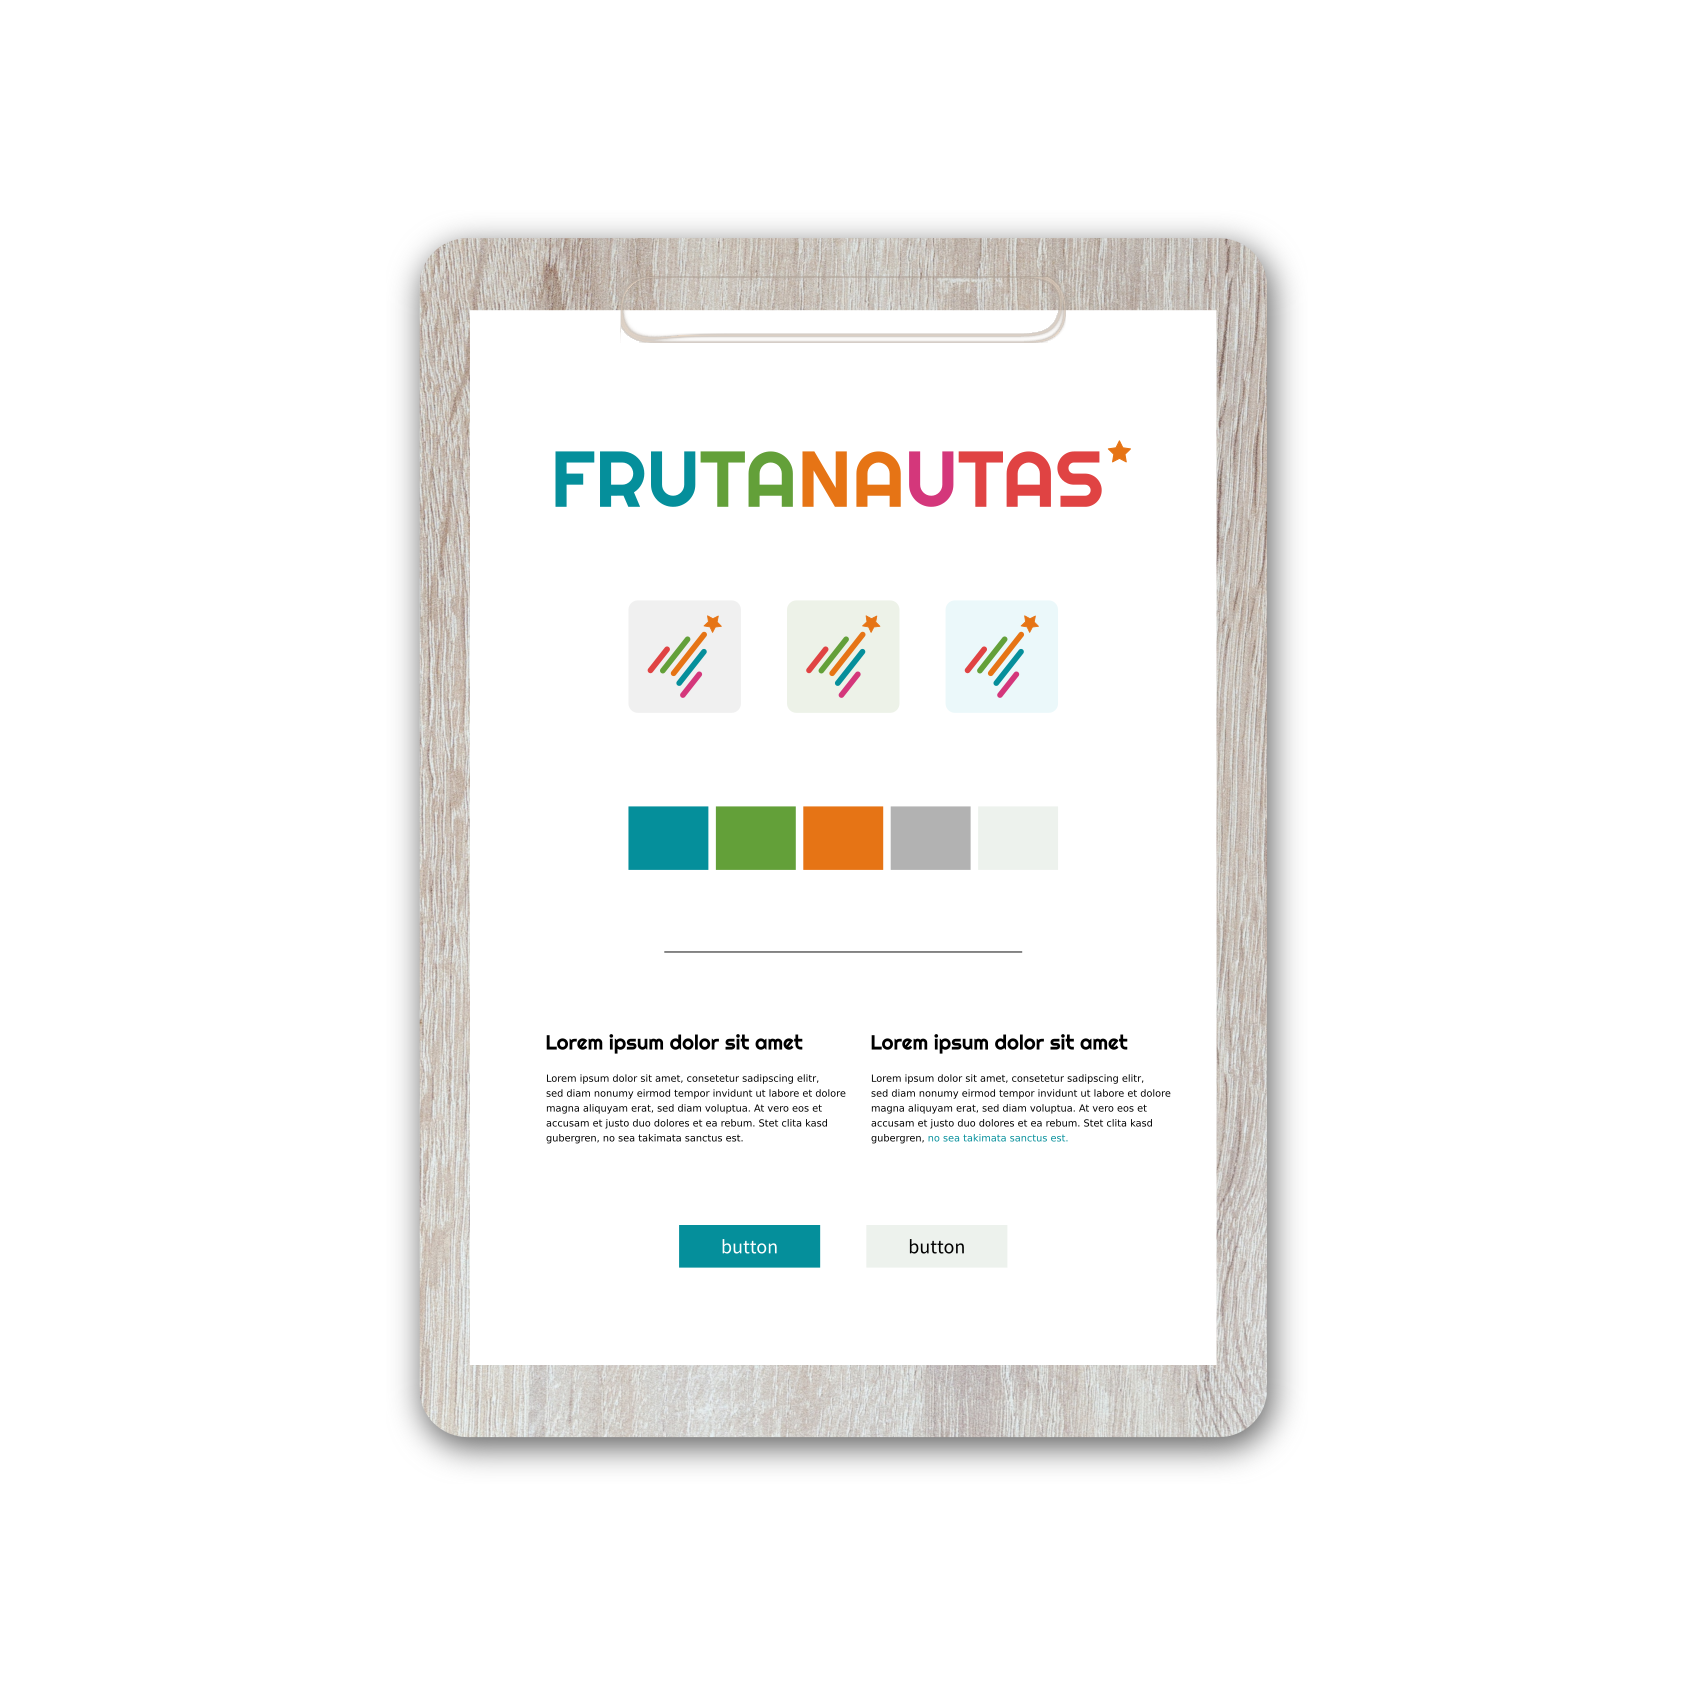 Frutanautas | Brand Strategy & Web Design by Red Ruby Sphere